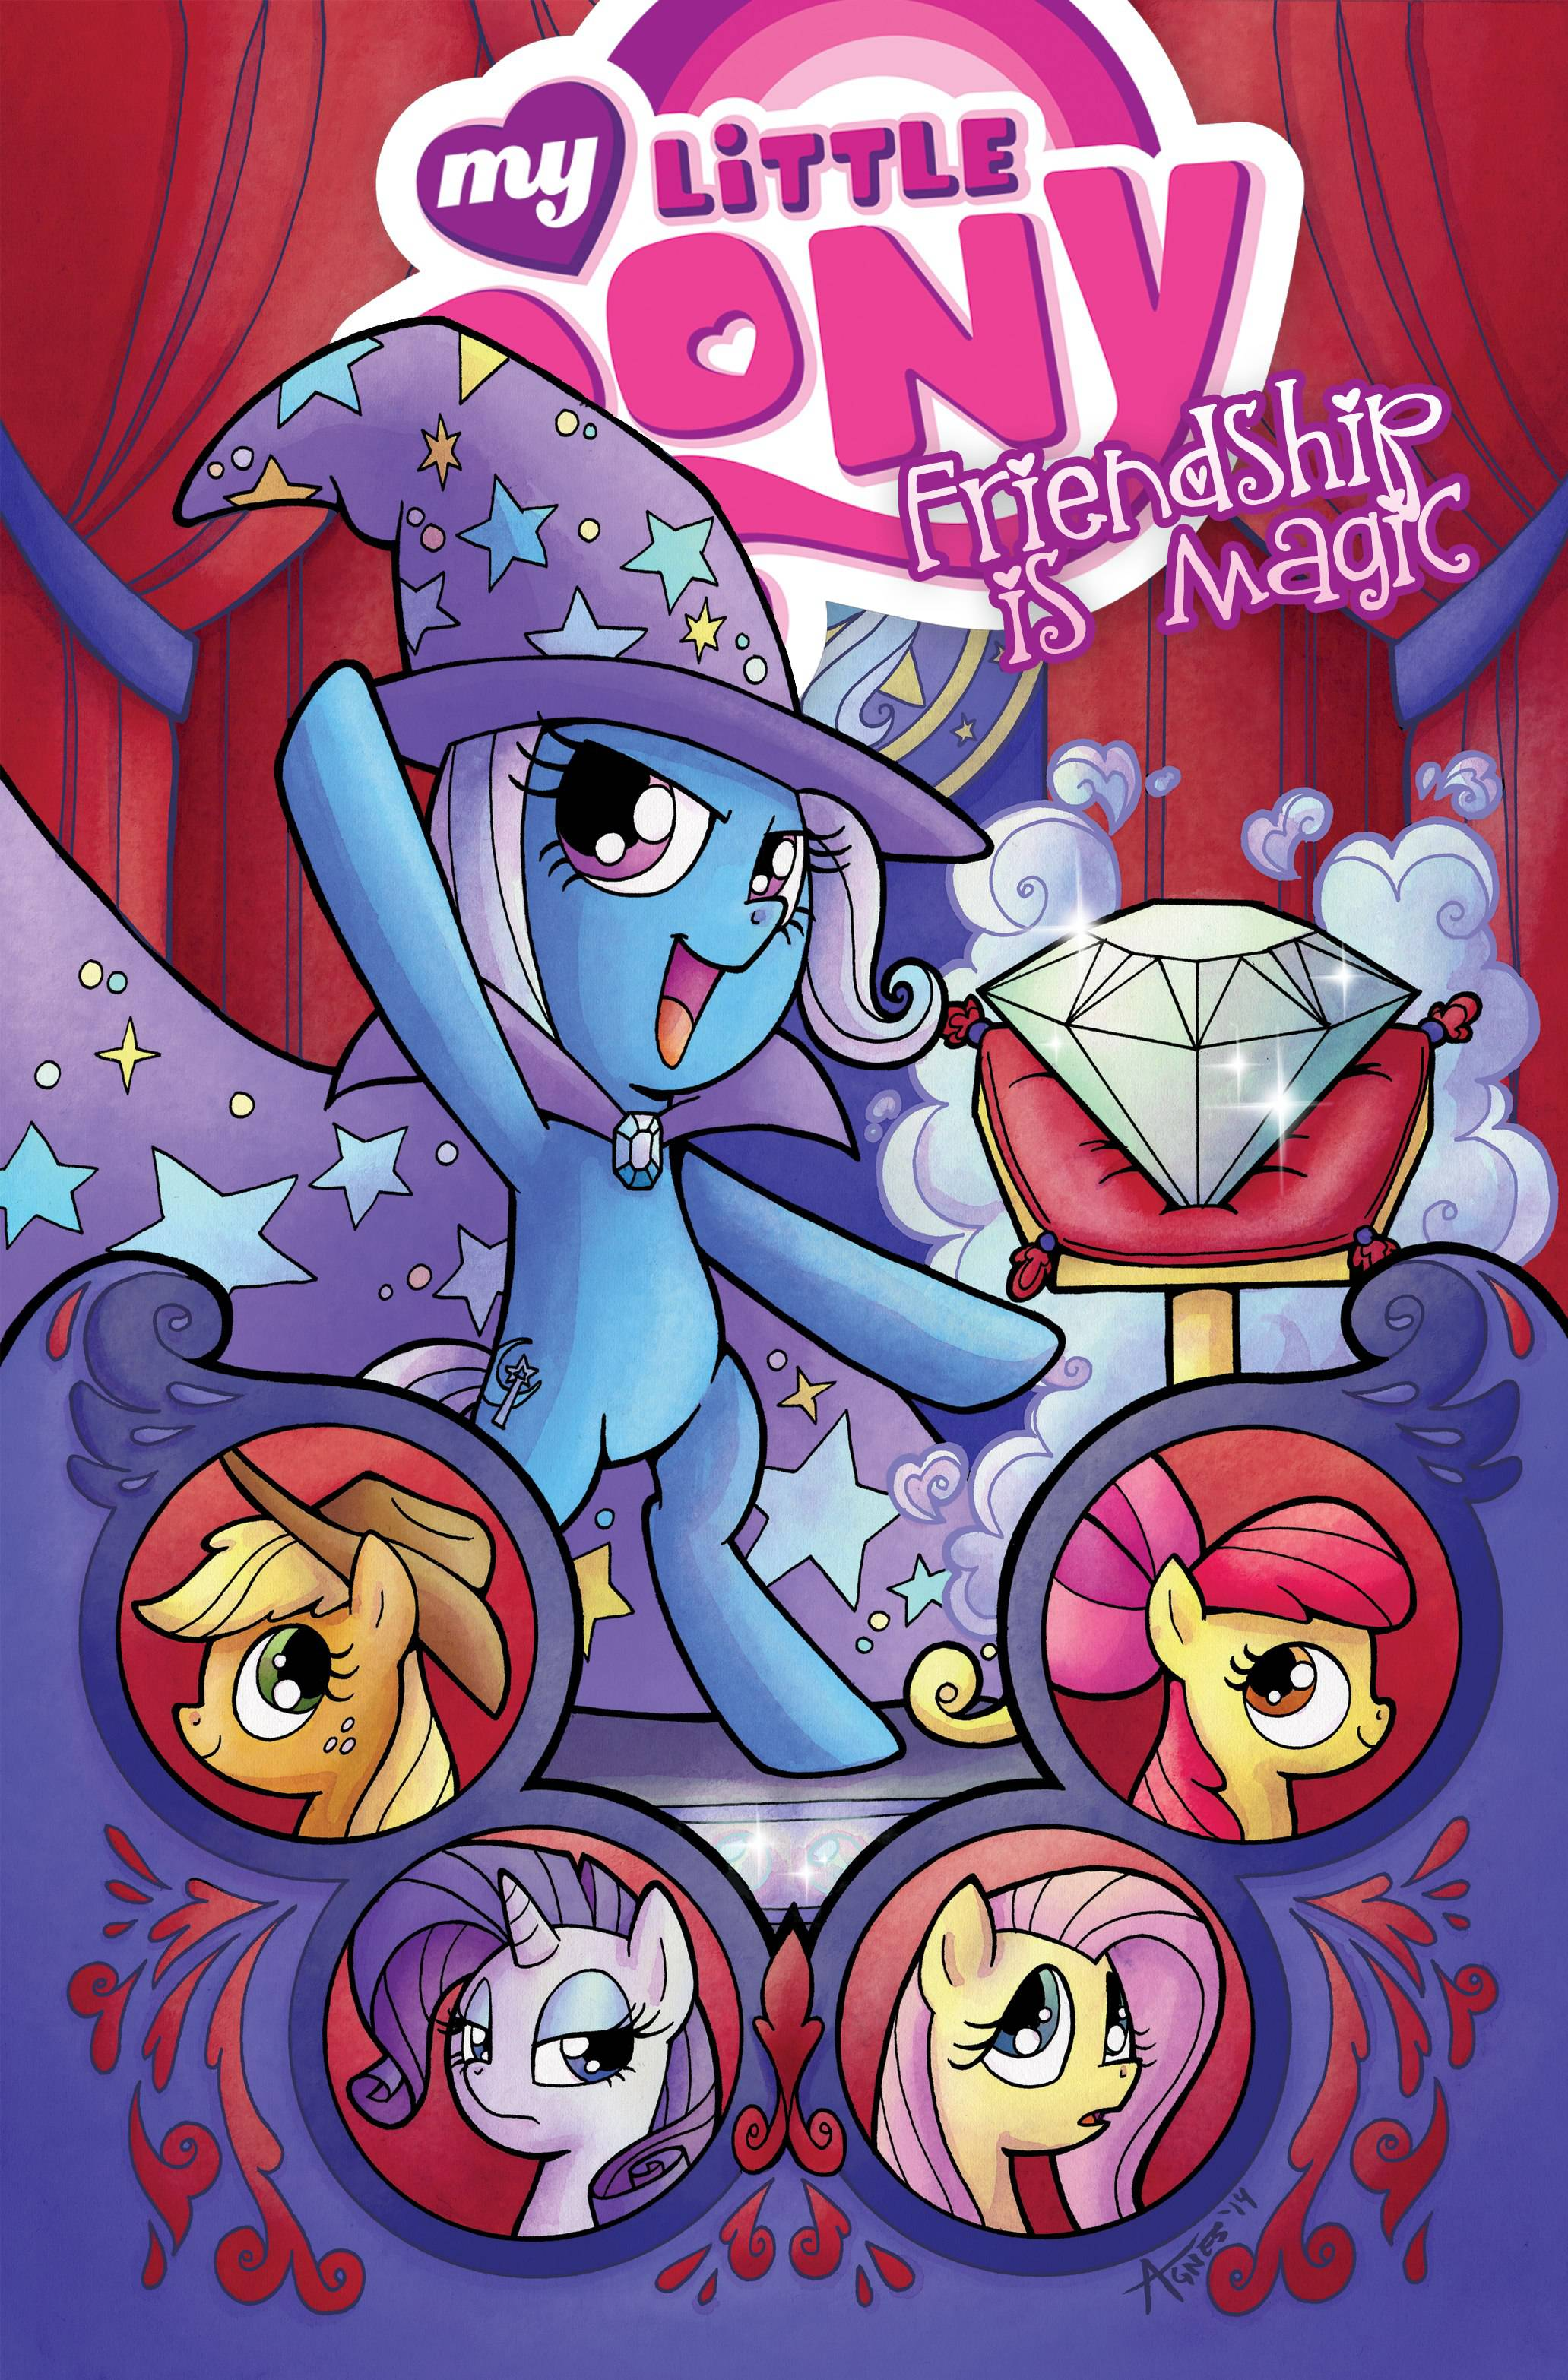 MY LITTLE PONY: FRIENDSHIP IS MAGIC VOL 06